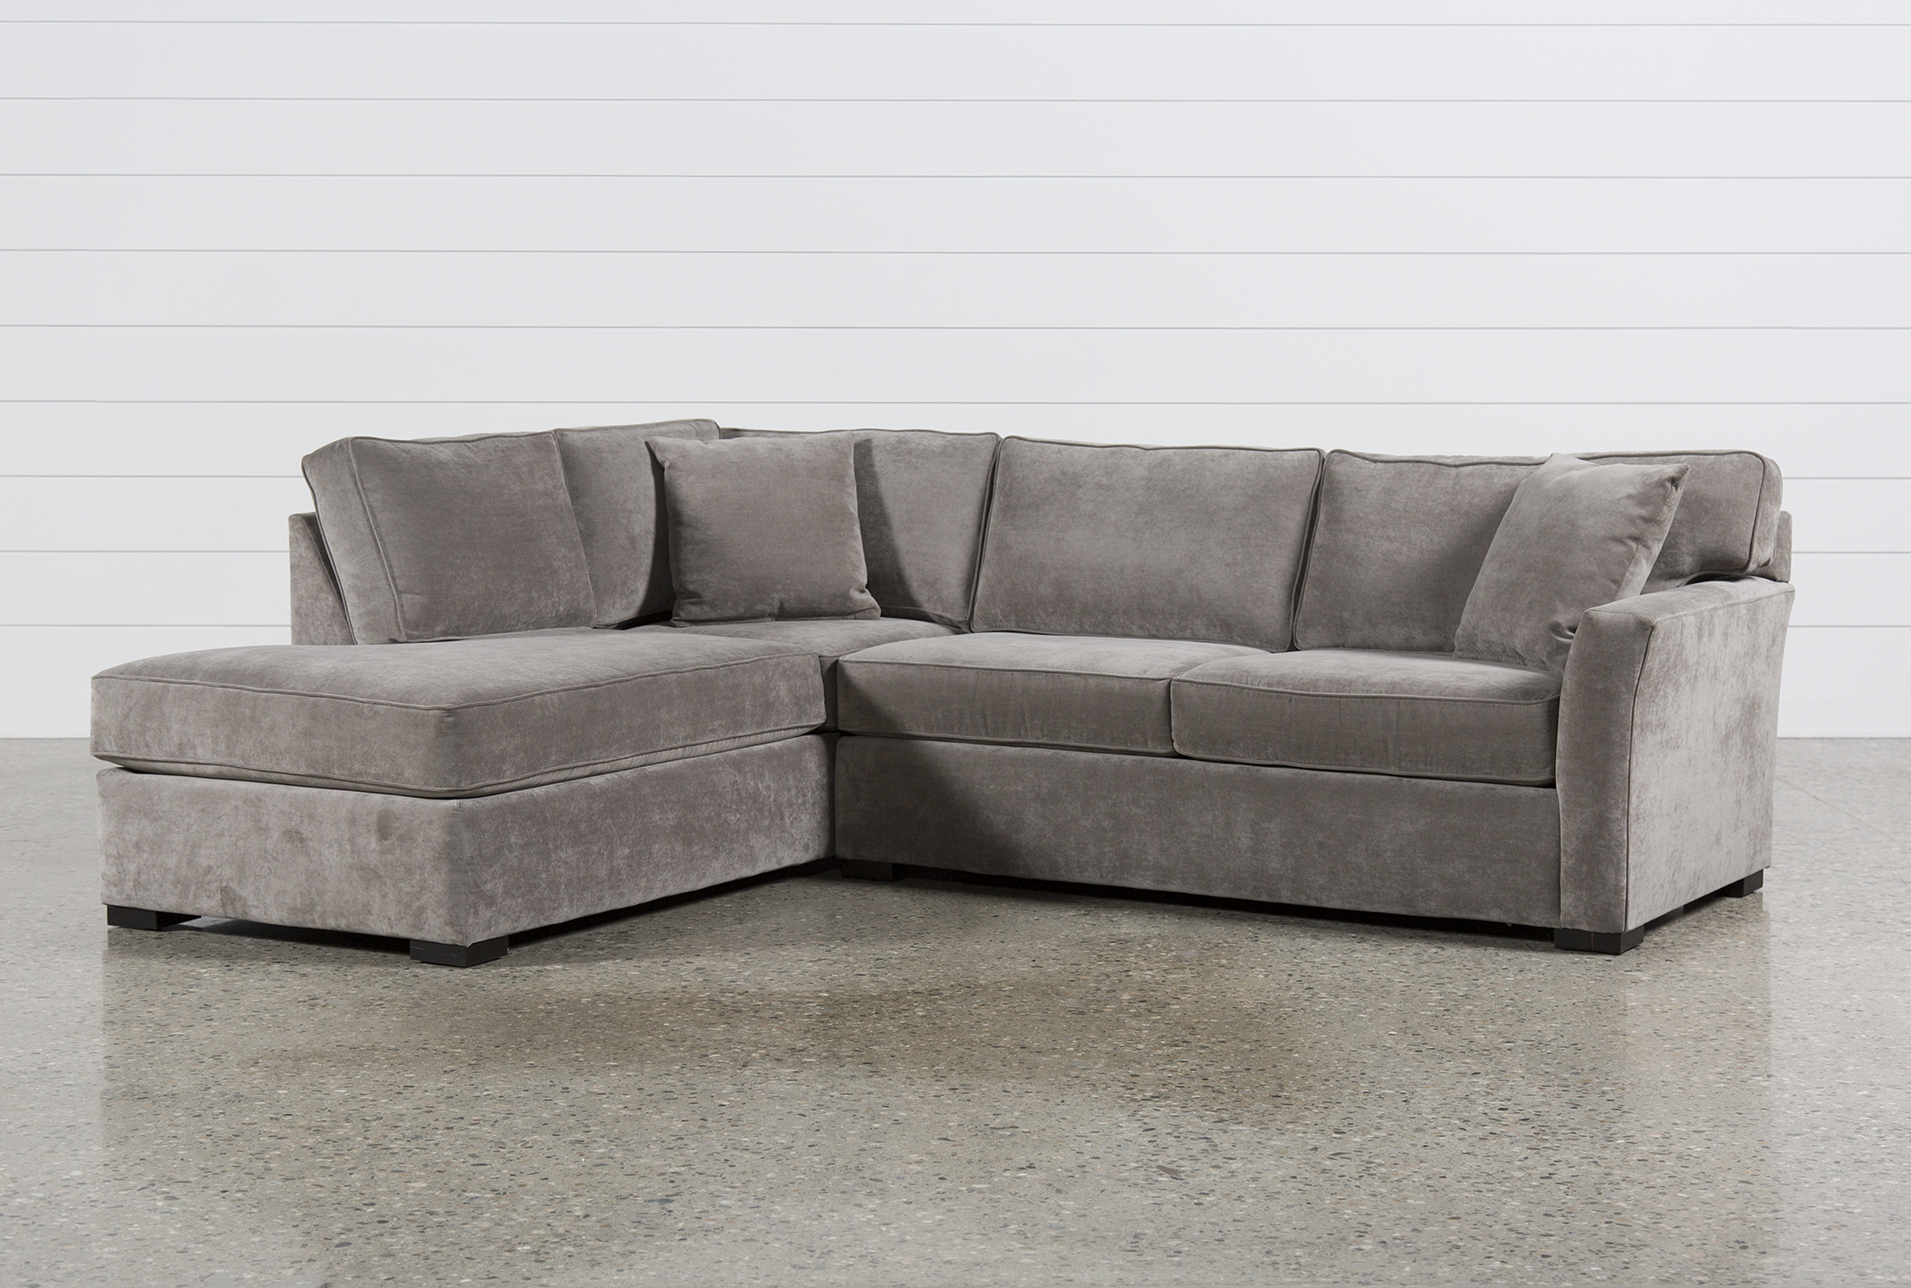 sleeper sofa sectional display product reviews for kit-aspen 2 piece sleeper sectional w/laf chaise RAFQSGE